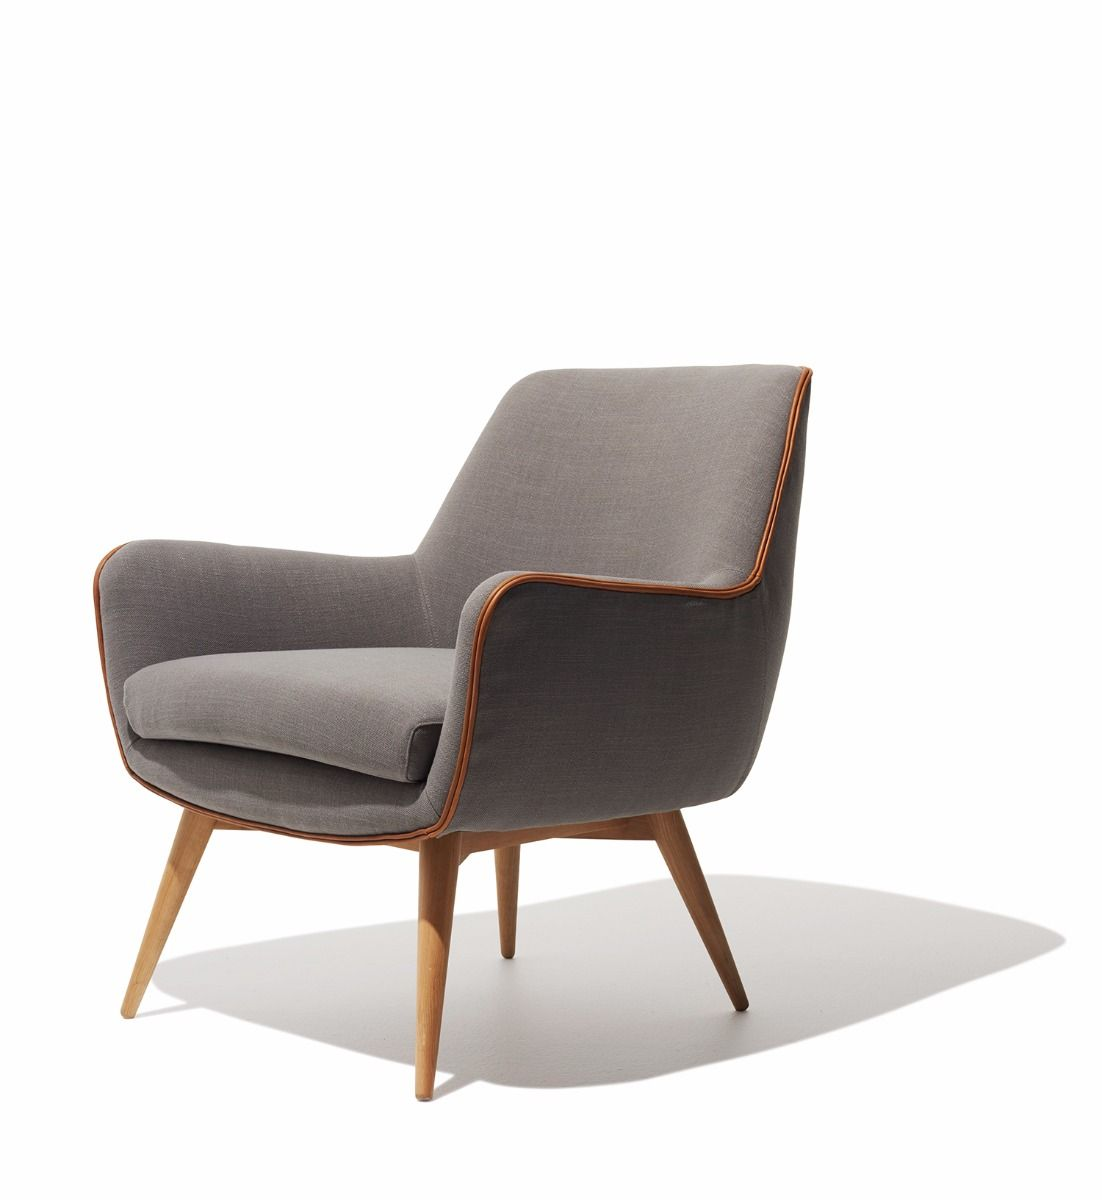 Space furniture chairs Sofa Cypress Lounge Chair Chairs Shop Pinterest Cypress Lounge Chair In 2019 Lounging Around Pinterest Chair